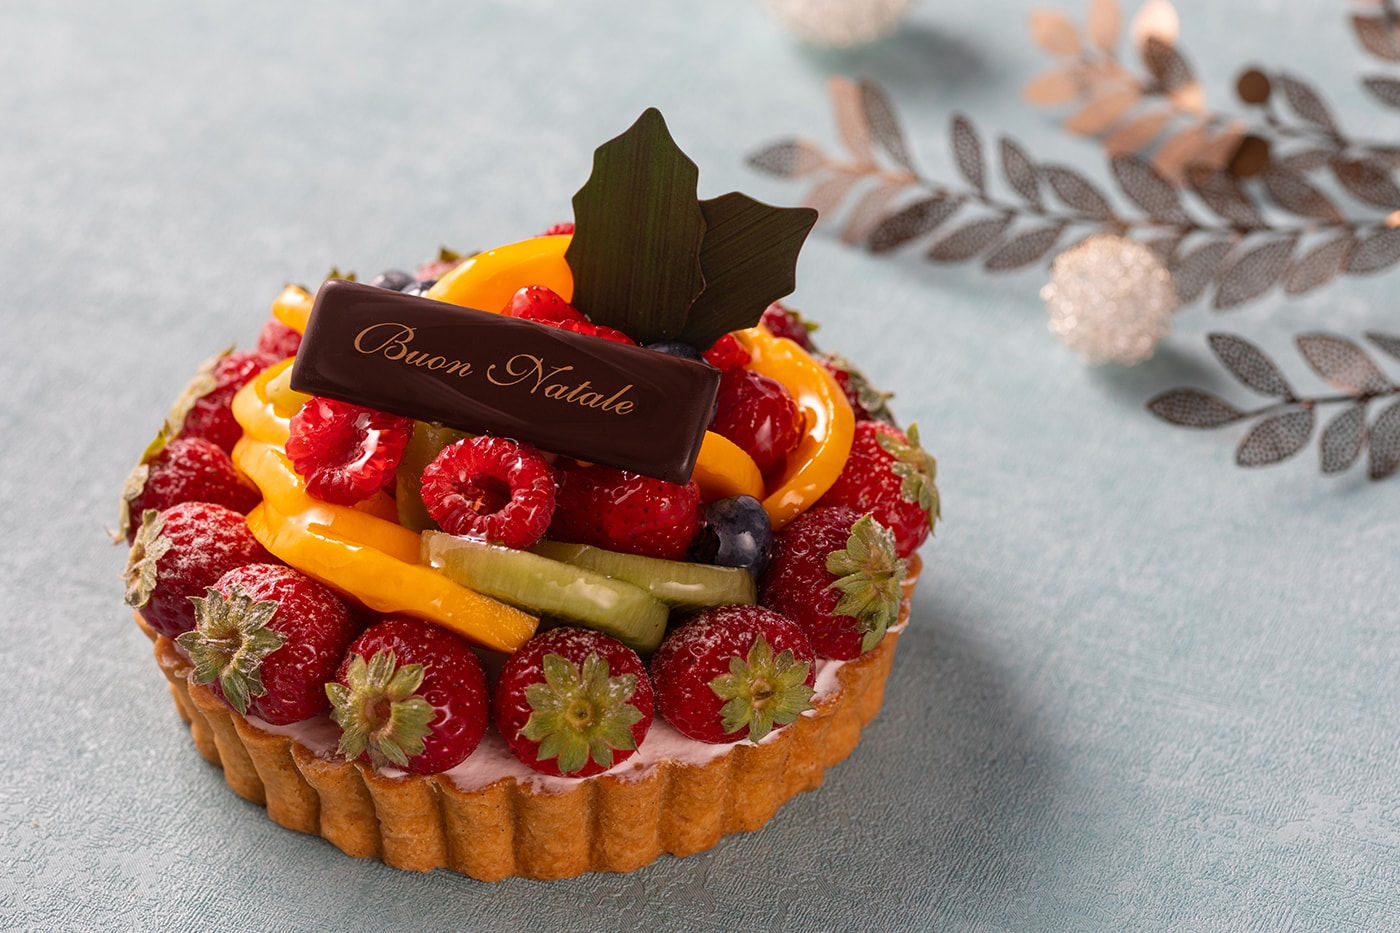 Fiorentina Pastry Boutique Ricotta Fruits Tart